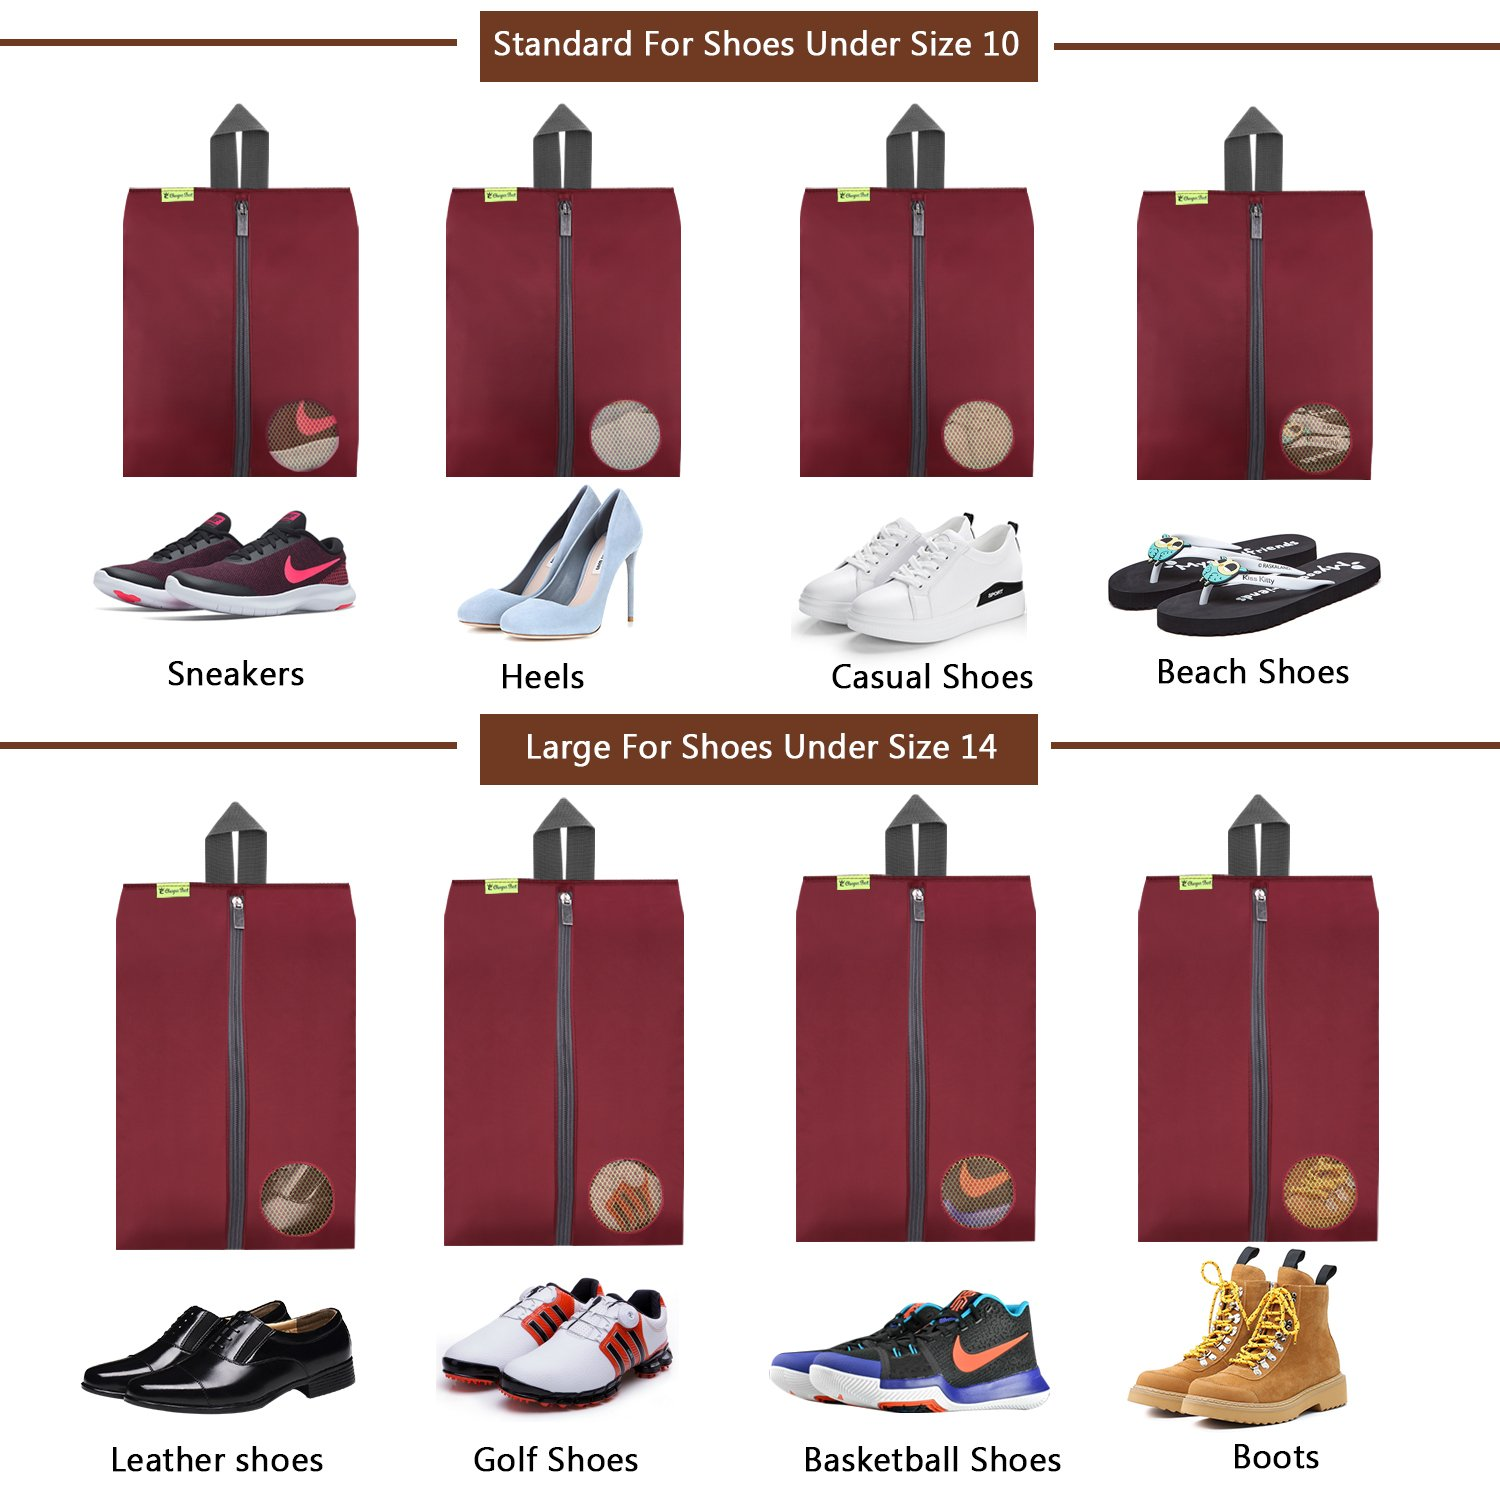 Travel Shoes Bags 4 Pieces Pack – Cheaper Best - Waterproof Durable Versatile Organizers Sleeves Tough Zipper with Fluorescent Mesh Reinforced See-Through Window (Burgundy) by Cheaper Best (Image #4)